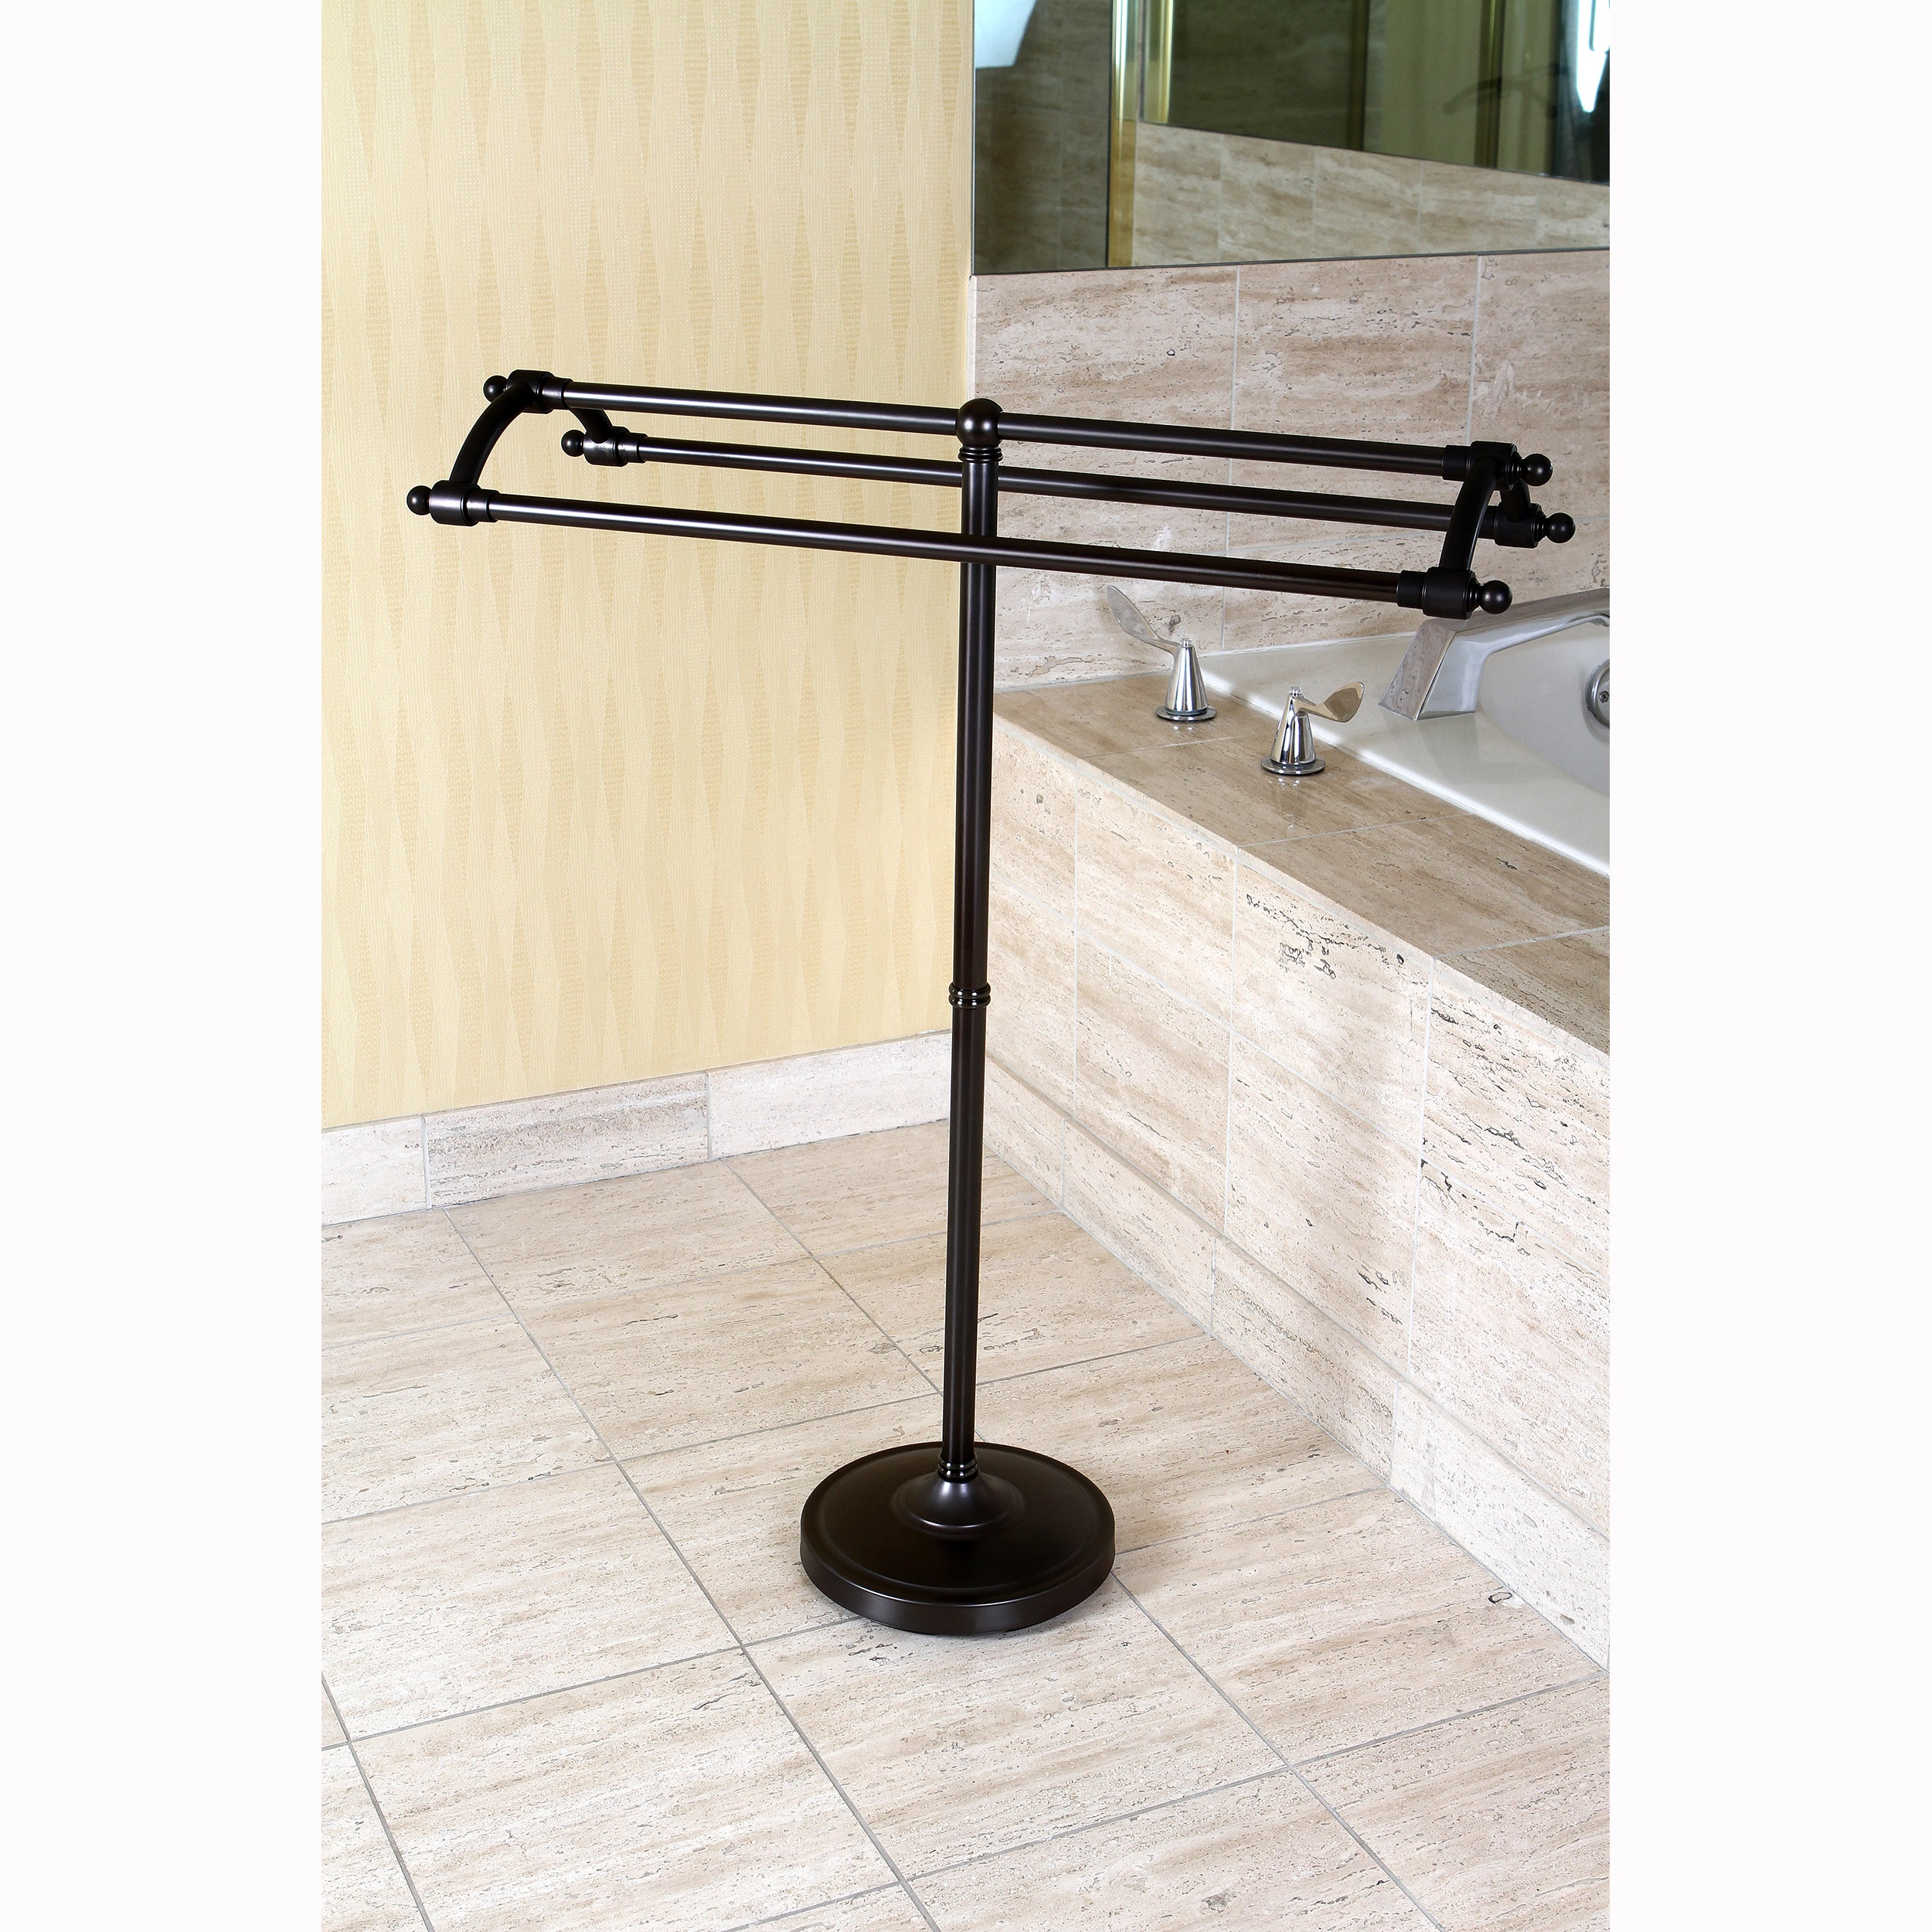 standing towel rack oil rubbed bronze. Oil Rubbed Bronze Pedestal Bath Towel Rack Free Shipping Today Standing